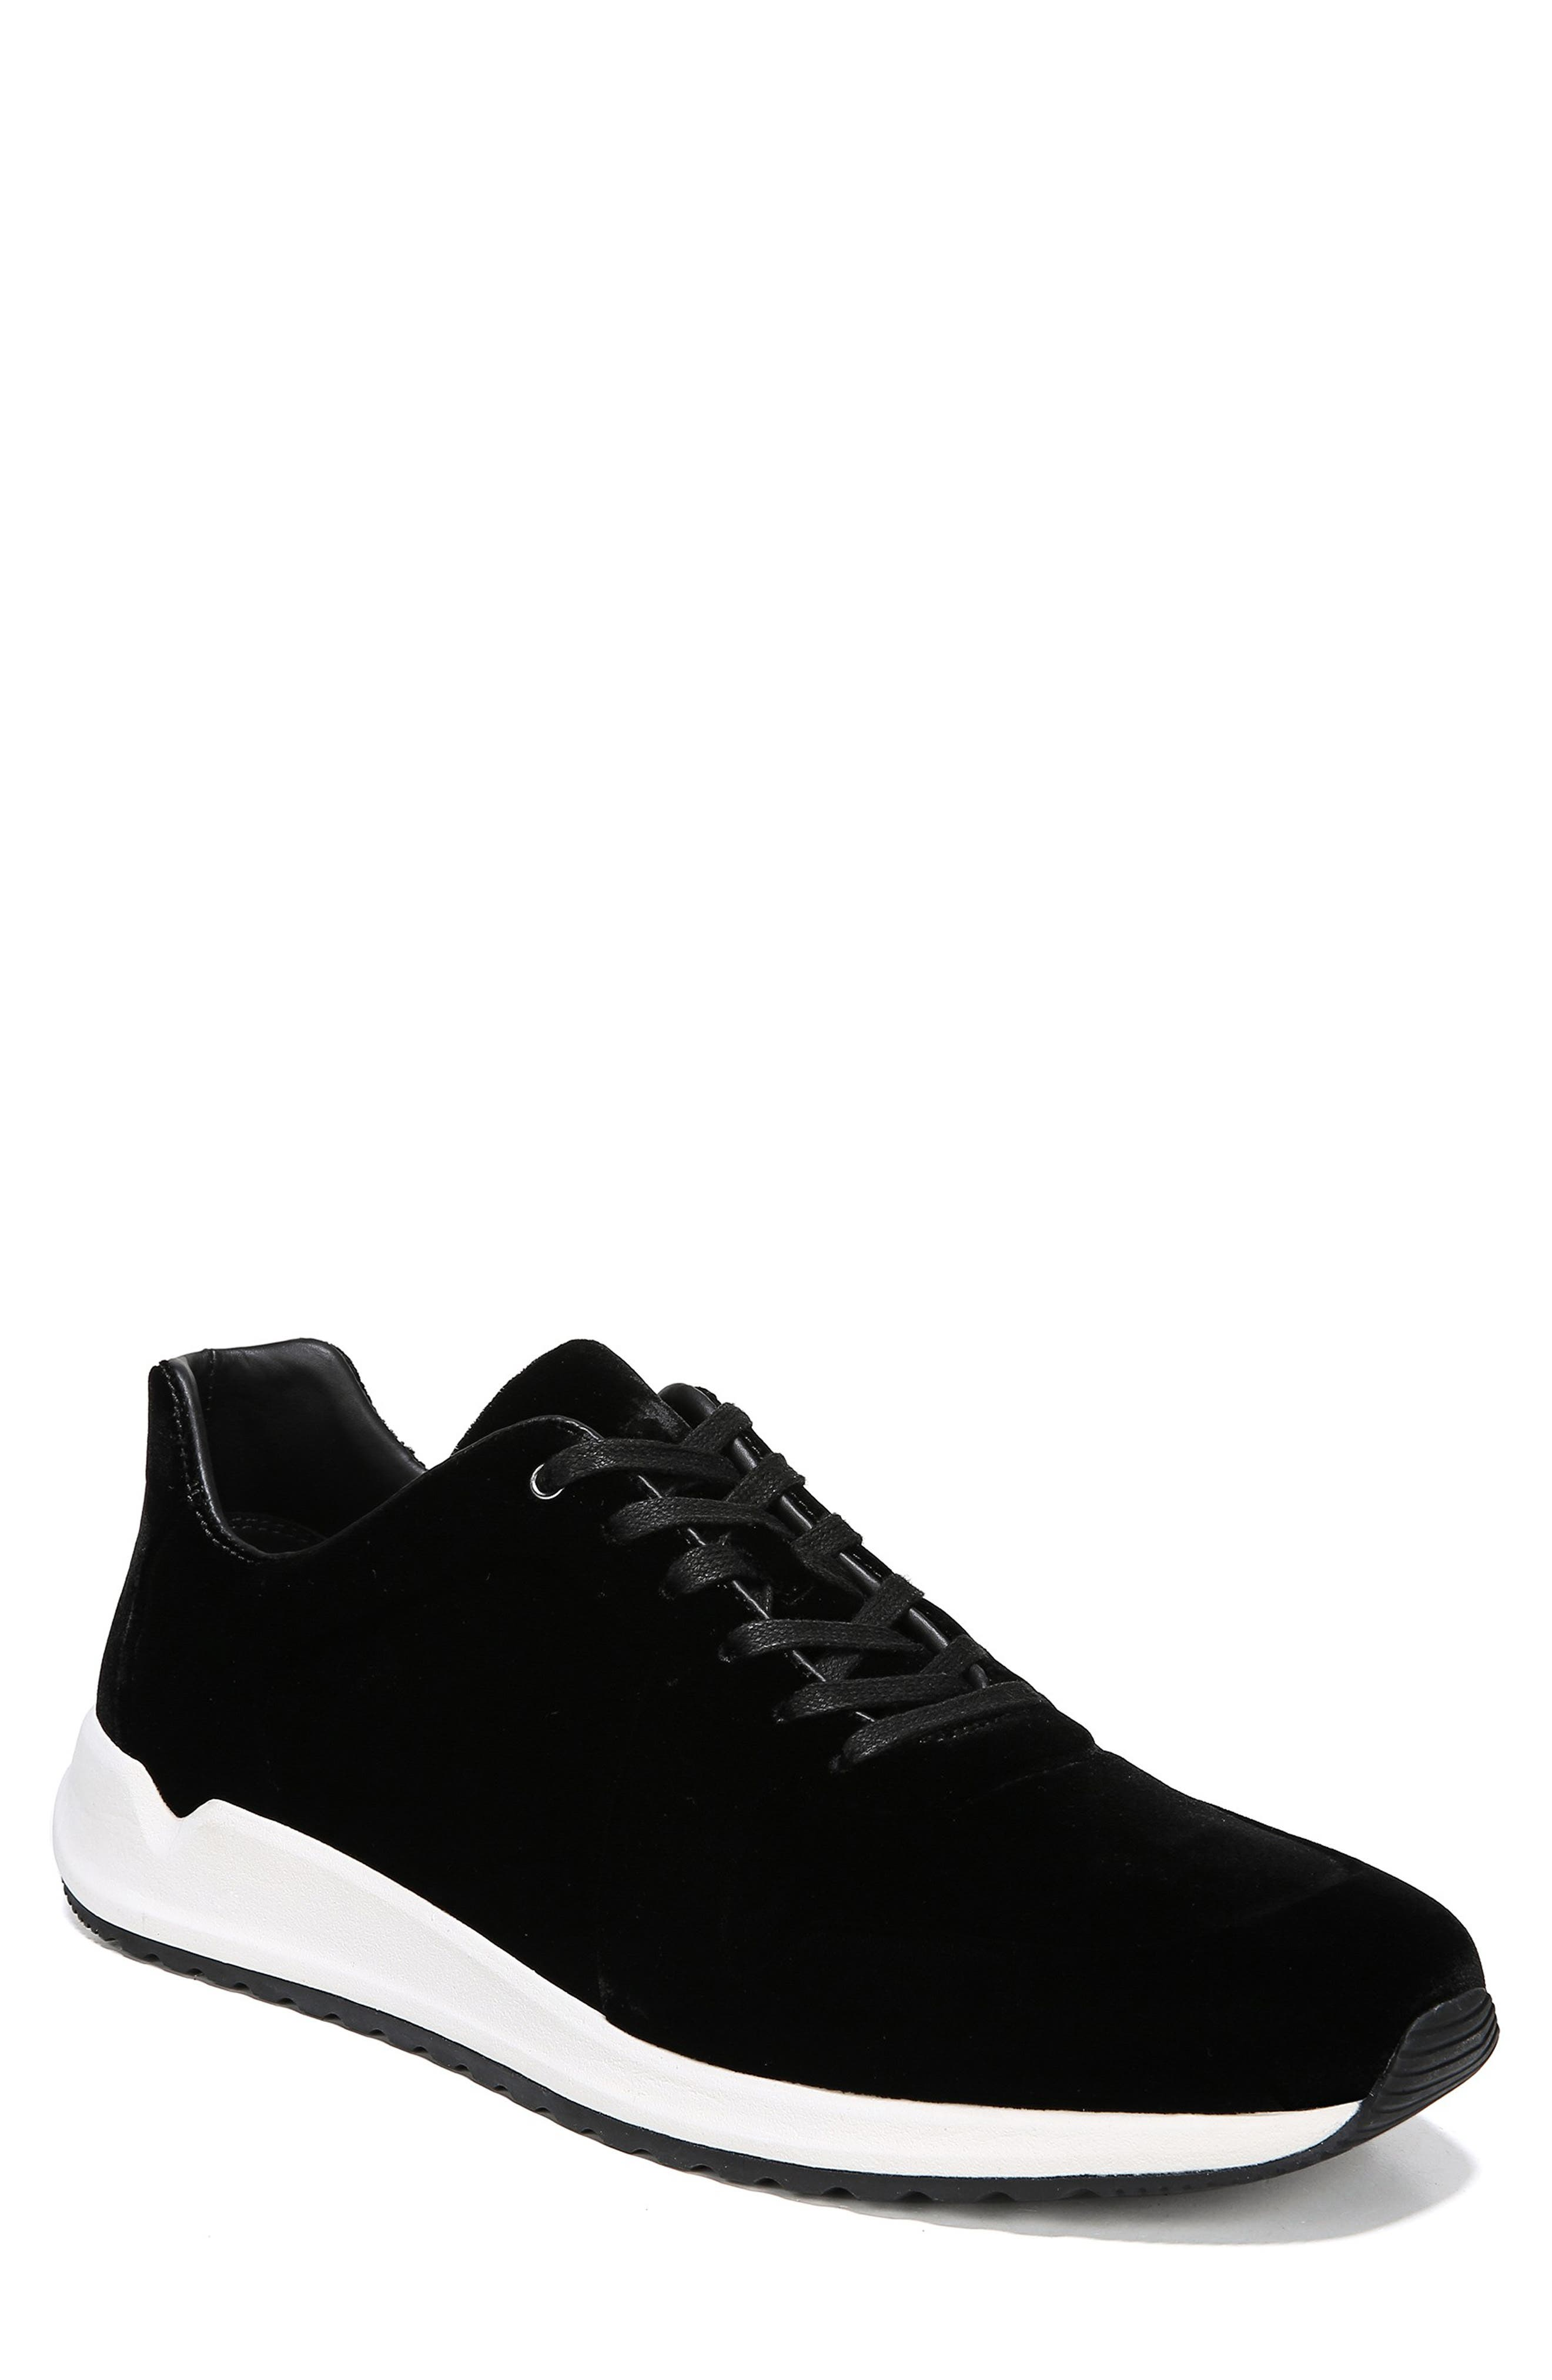 Garret Sneaker,                         Main,                         color, BLACK